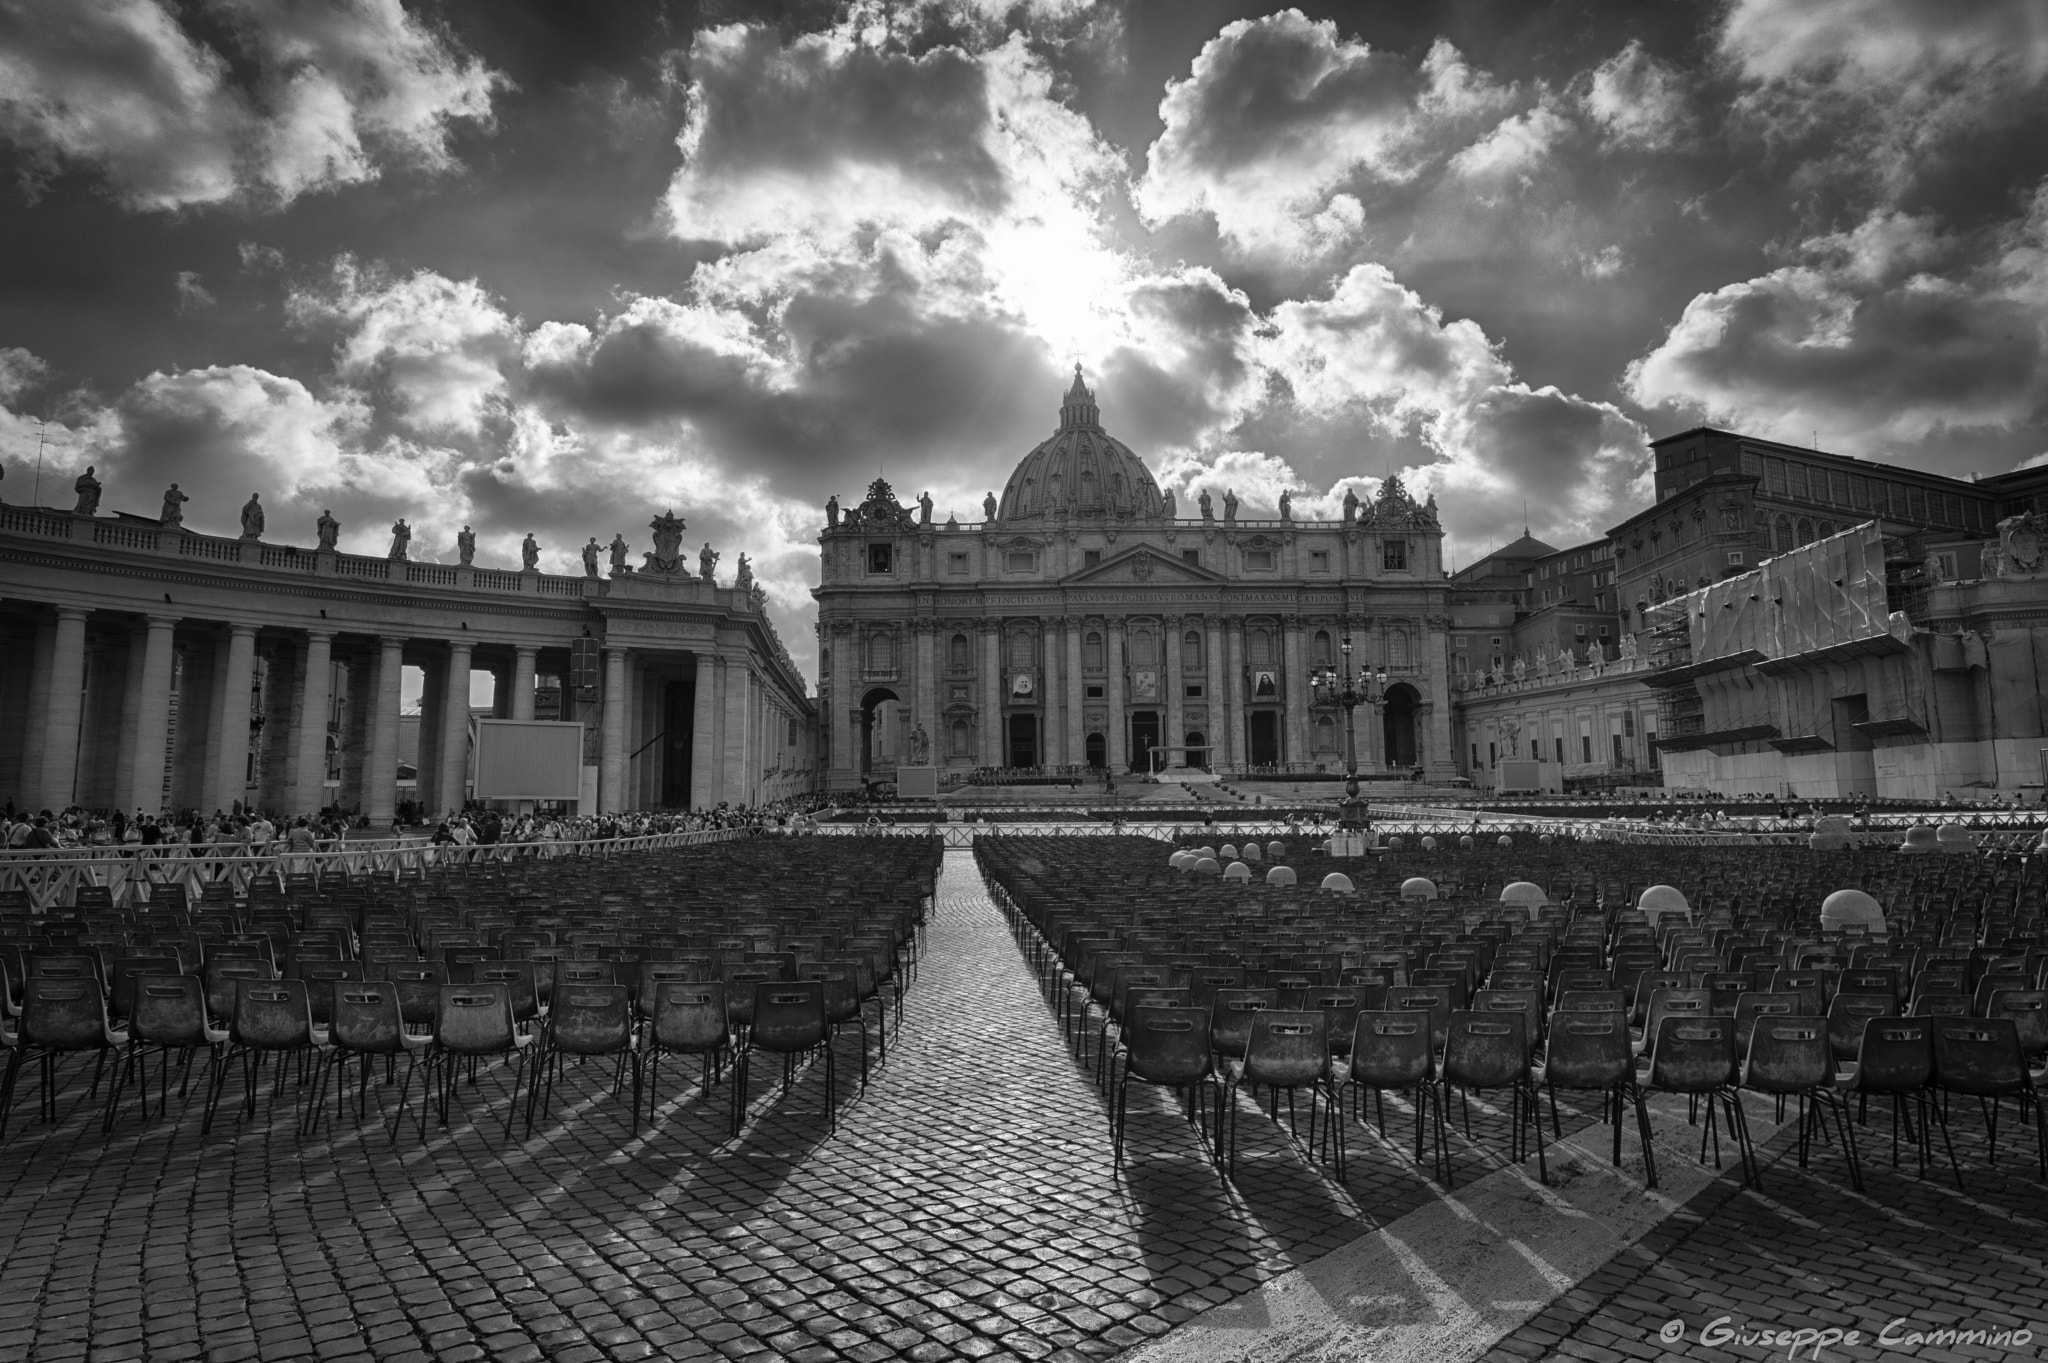 Photograph St. Peter's Basilica - Waiting for the believers by Giuseppe Cammino on 500px